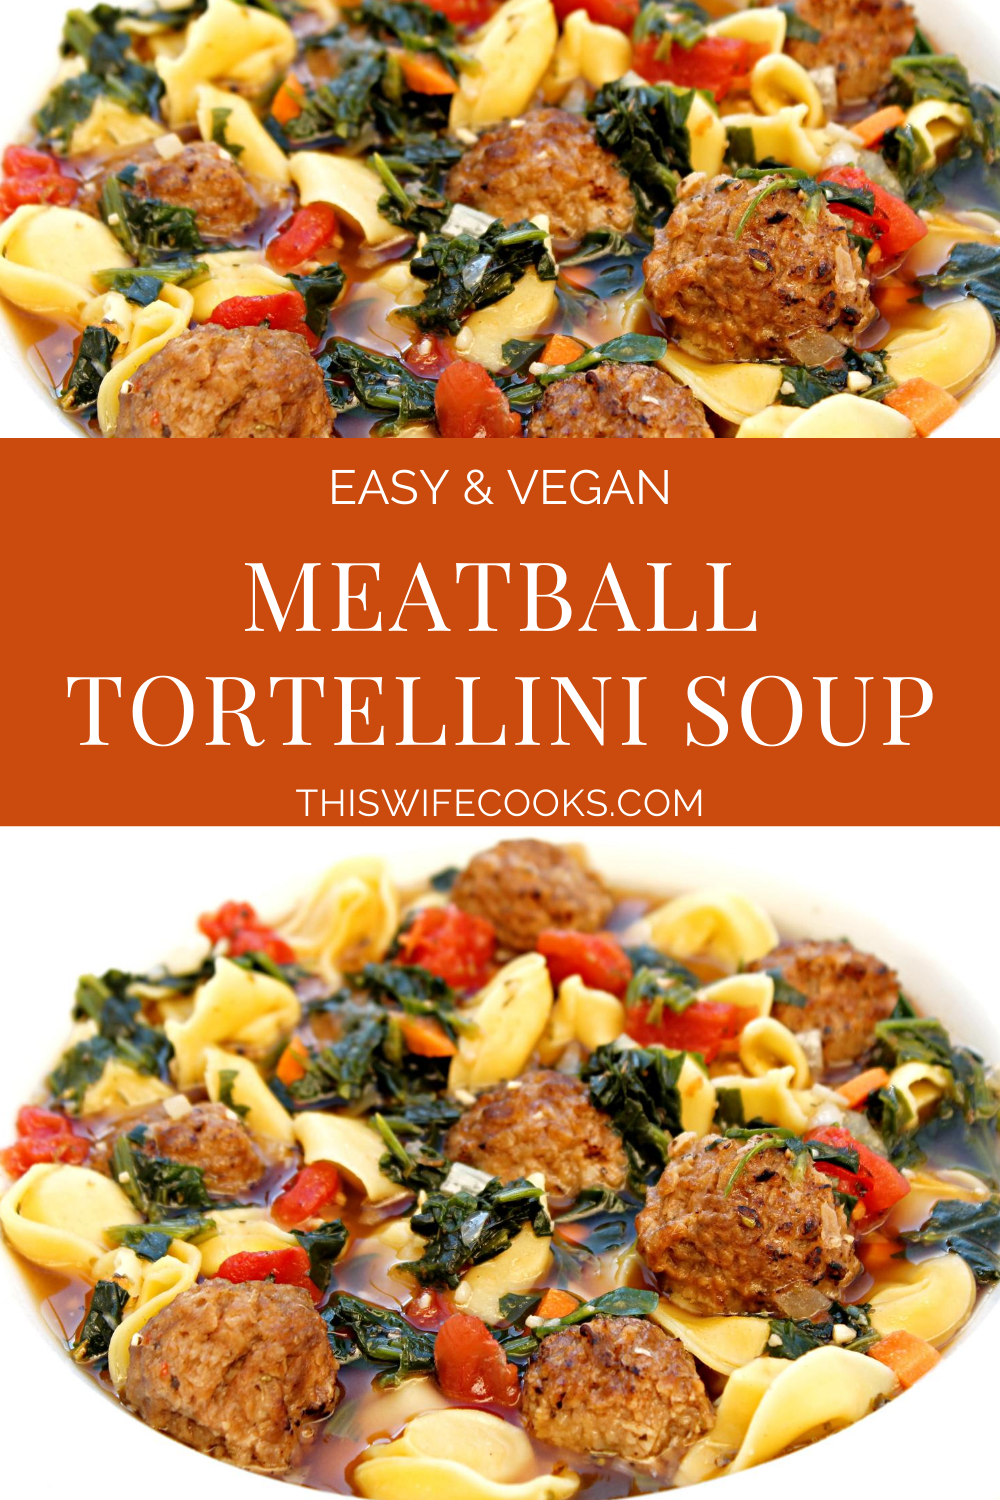 Meatball Tortellini Soup ~Veggie meatballs and dairy-free cheese-filled tortellini served in a savory and meatless beef-style broth with carrots, onion, garlic, spinach, tomatoes, and seasonings. This is a simple yet robust and flavorful soup that is quick and easy to make in 30 minutes or less! via @thiswifecooks